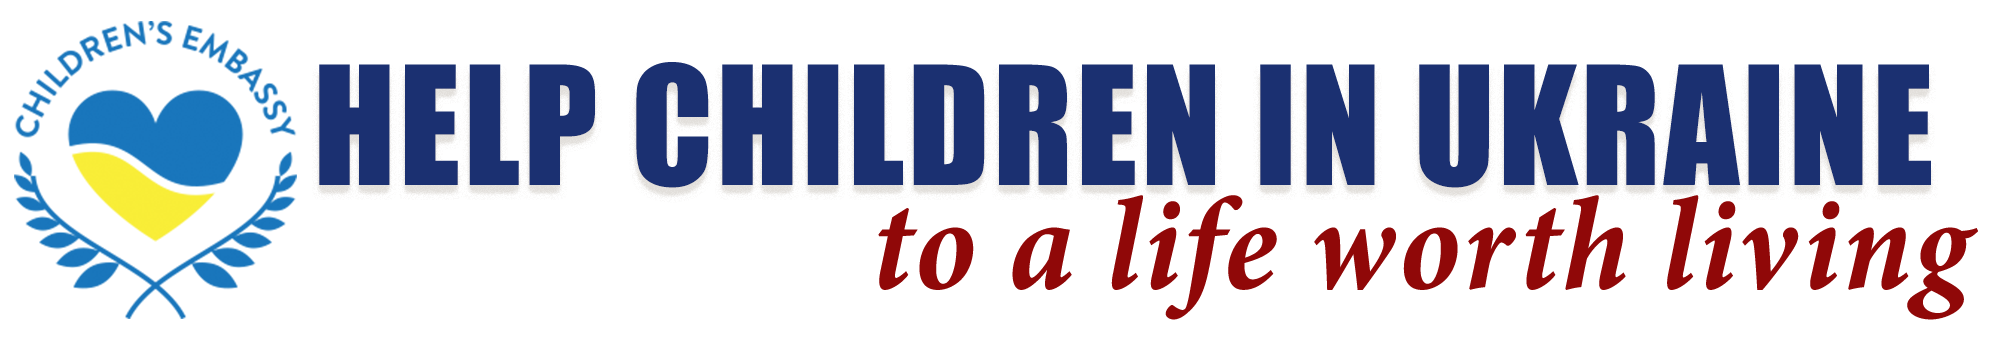 You can be the difference for a child in need in Ukraine header image